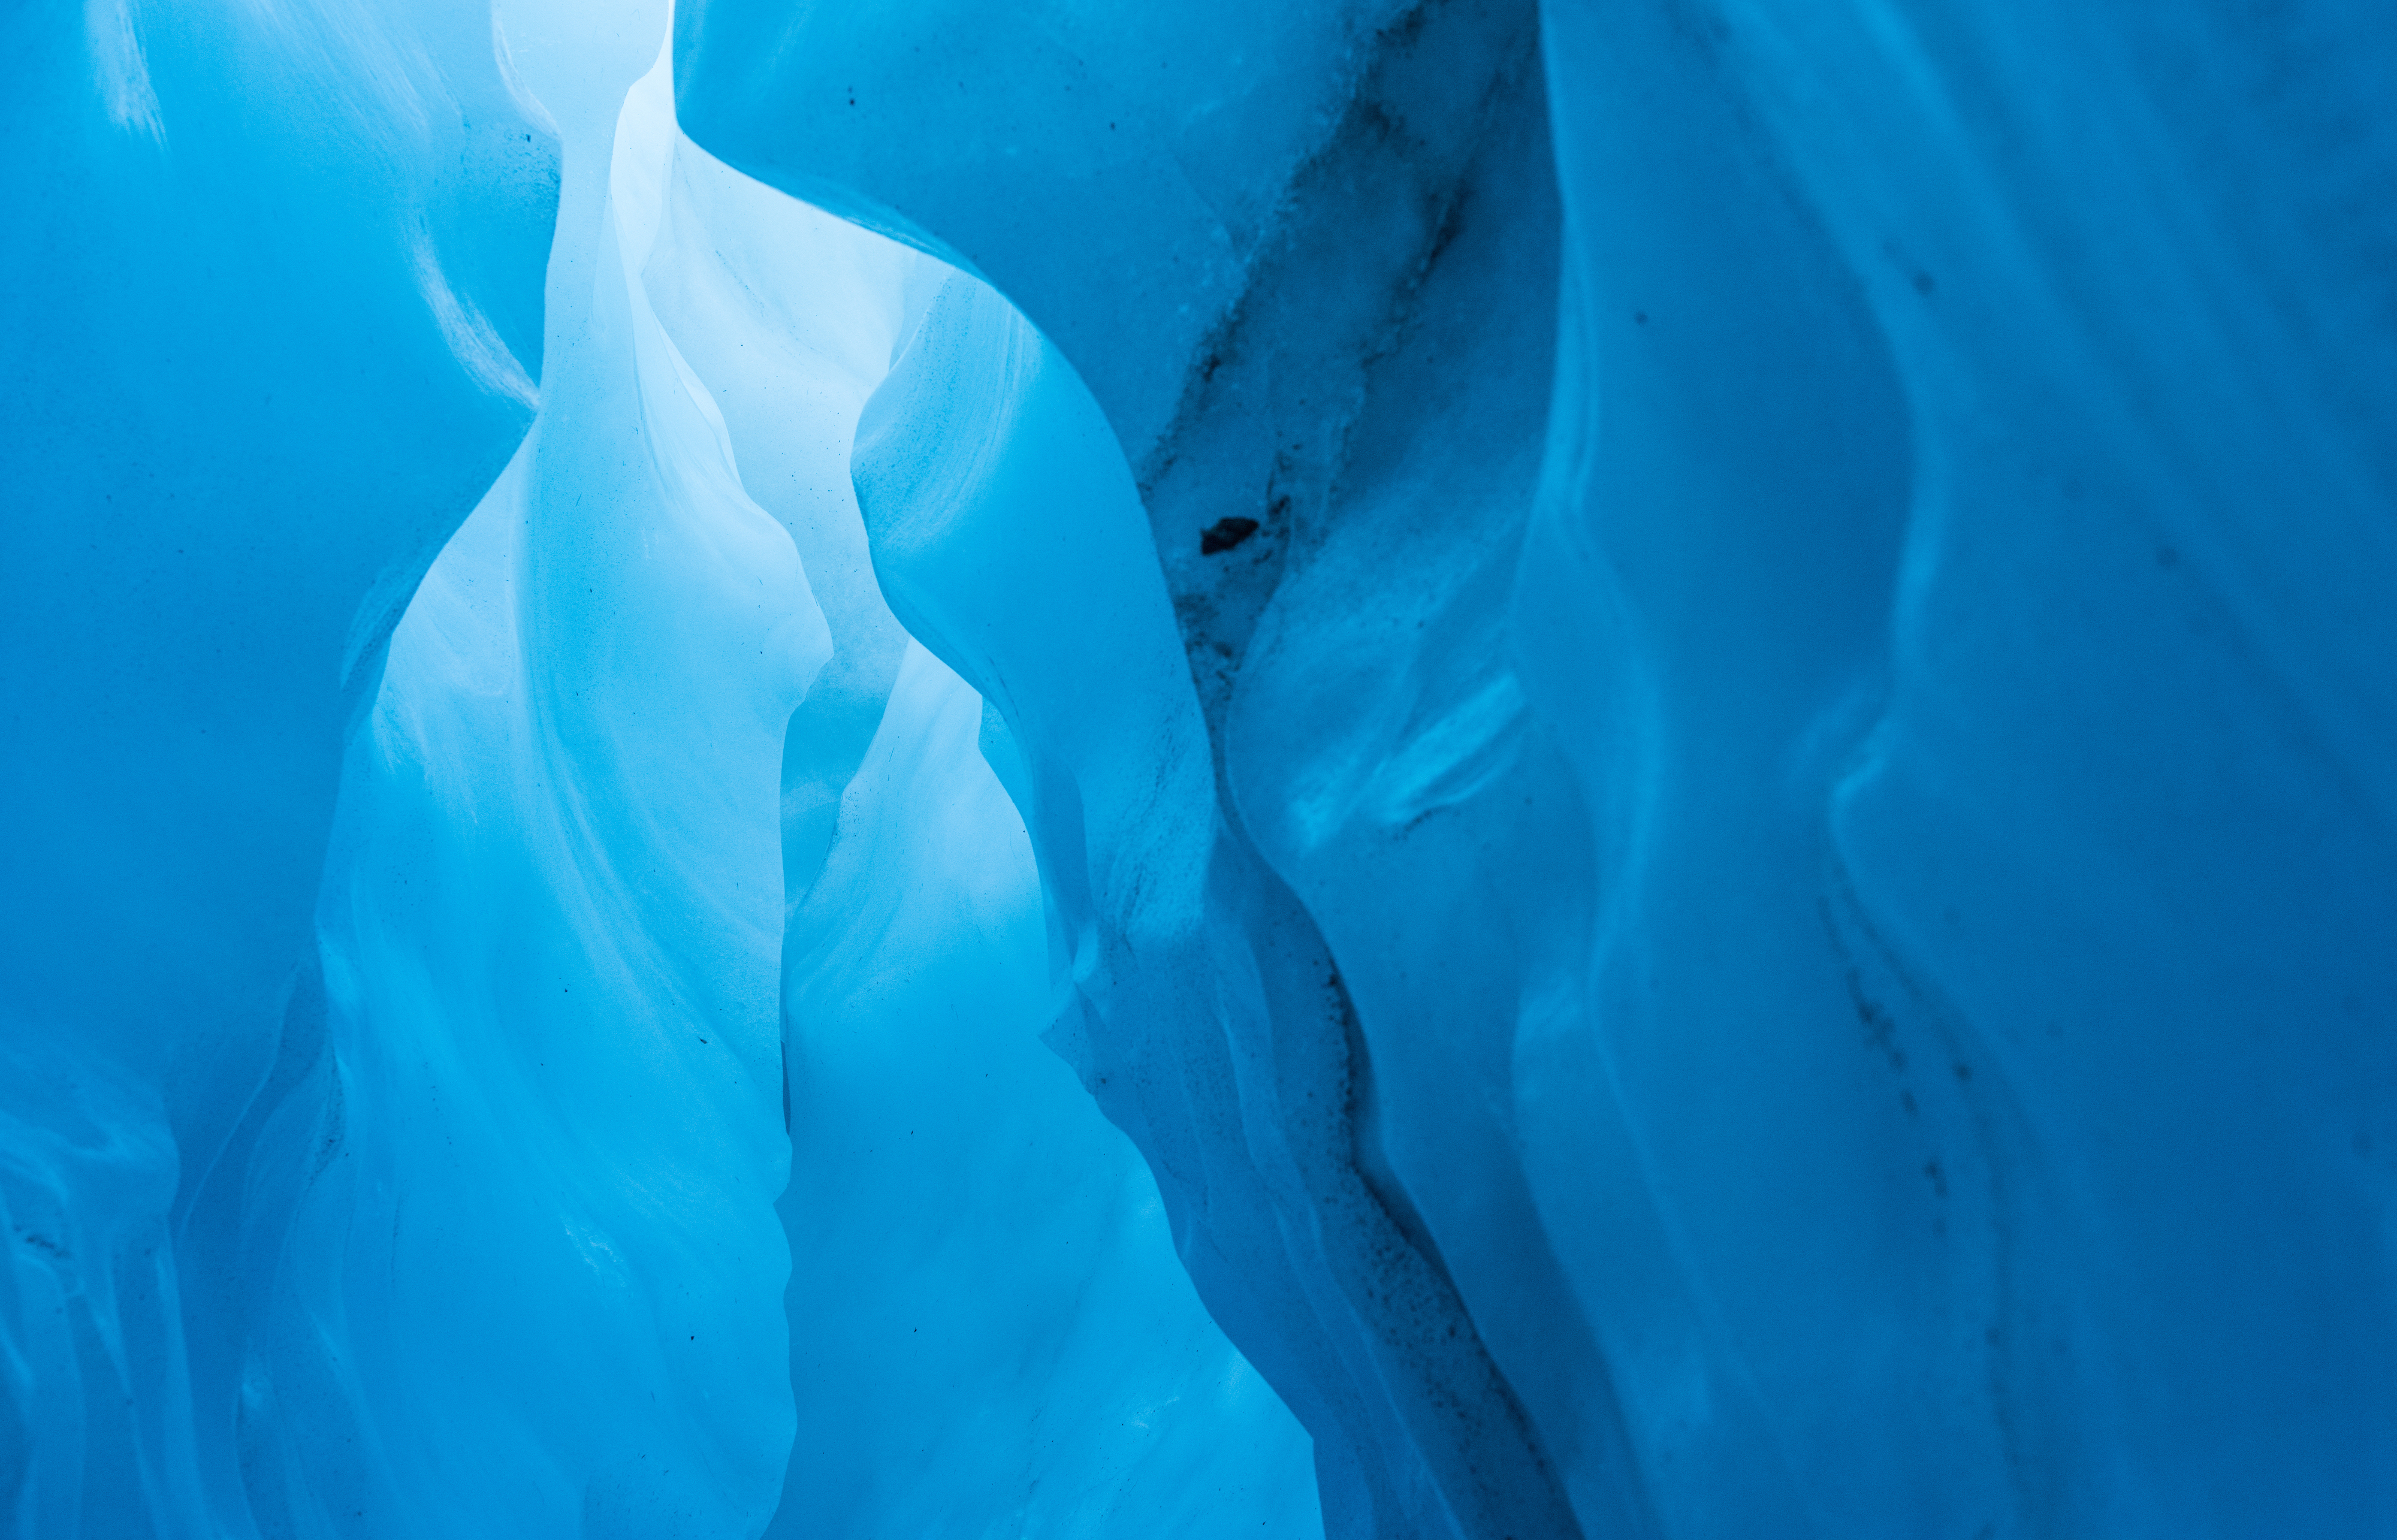 The_Kiss_Ice_Cave_©_Denesa_Chan_Photography_South_Island_New_Zealand-4650_copy